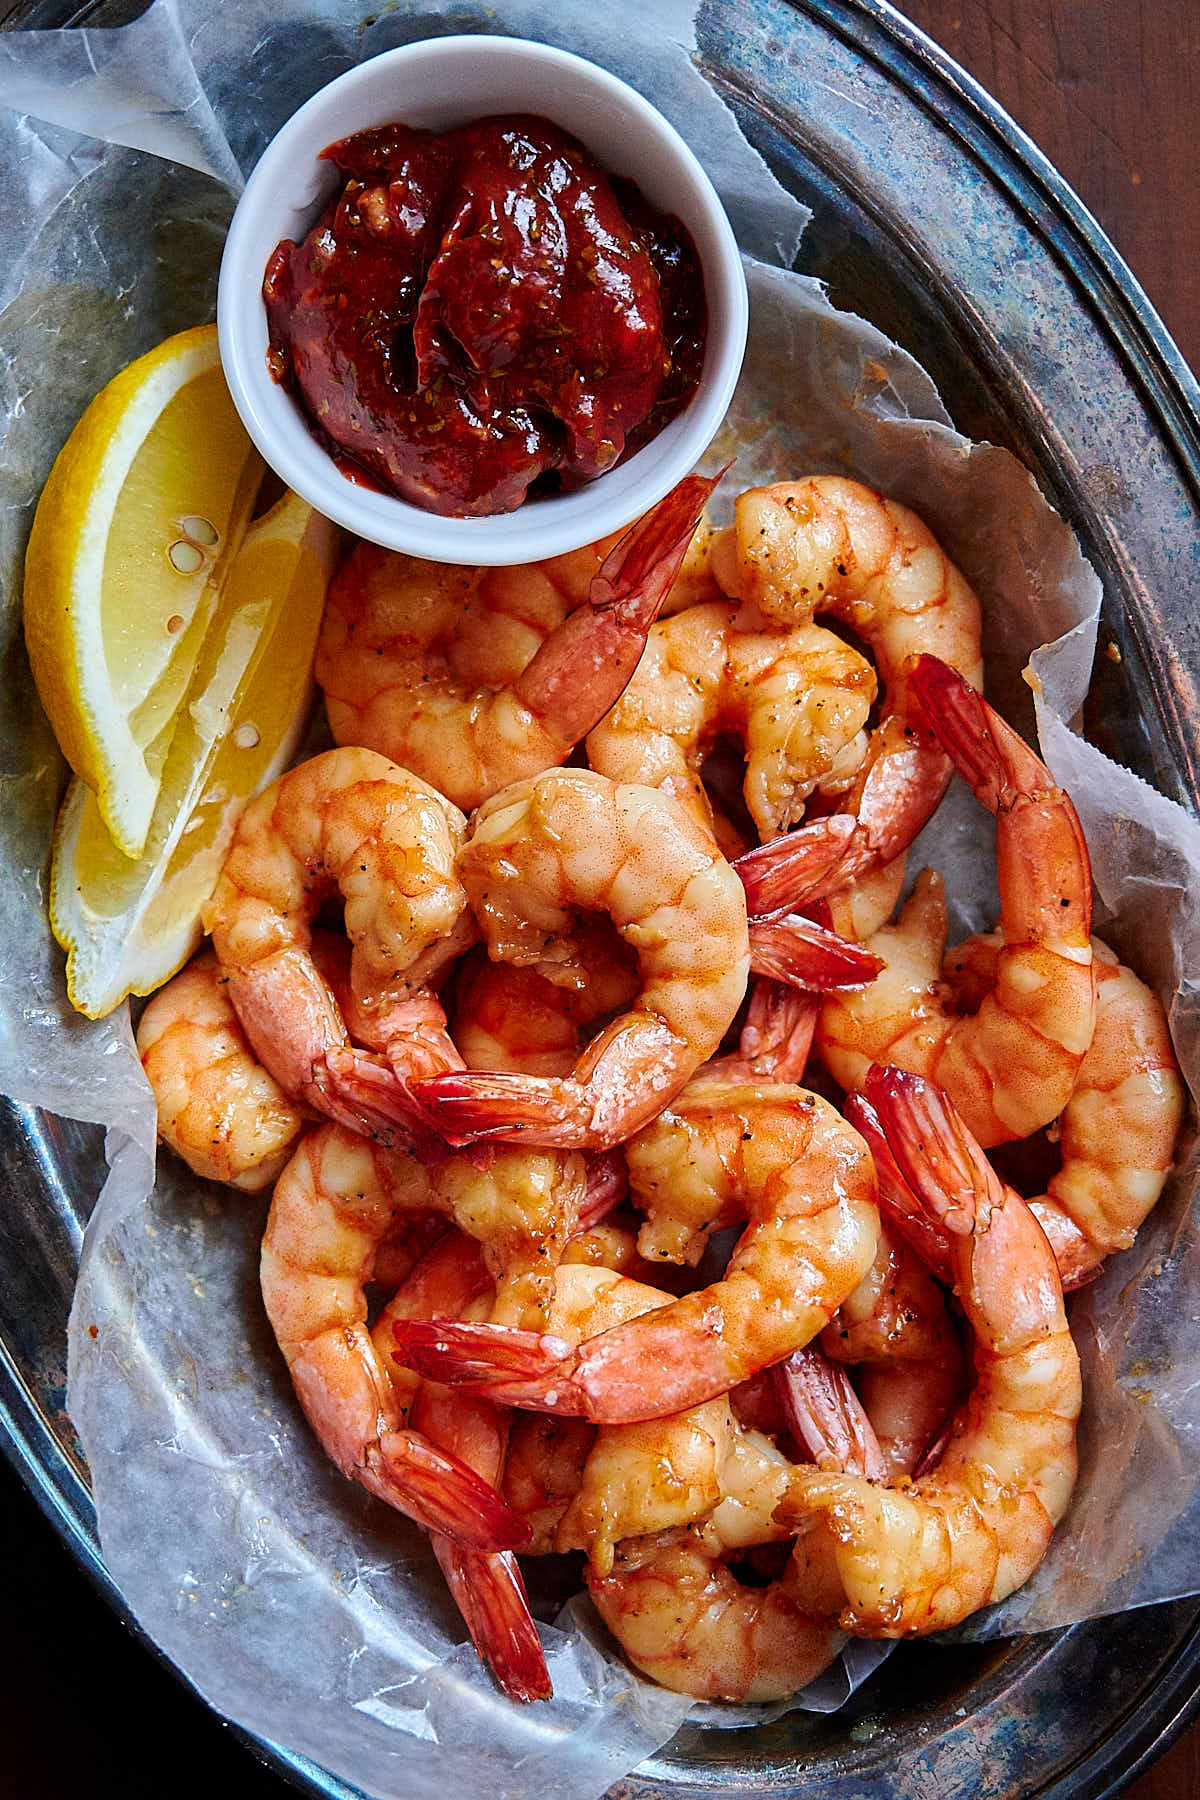 Air fried shrimp in a basket lined with white wax paper, with a lemon wedge a saucer with sauce on the side.